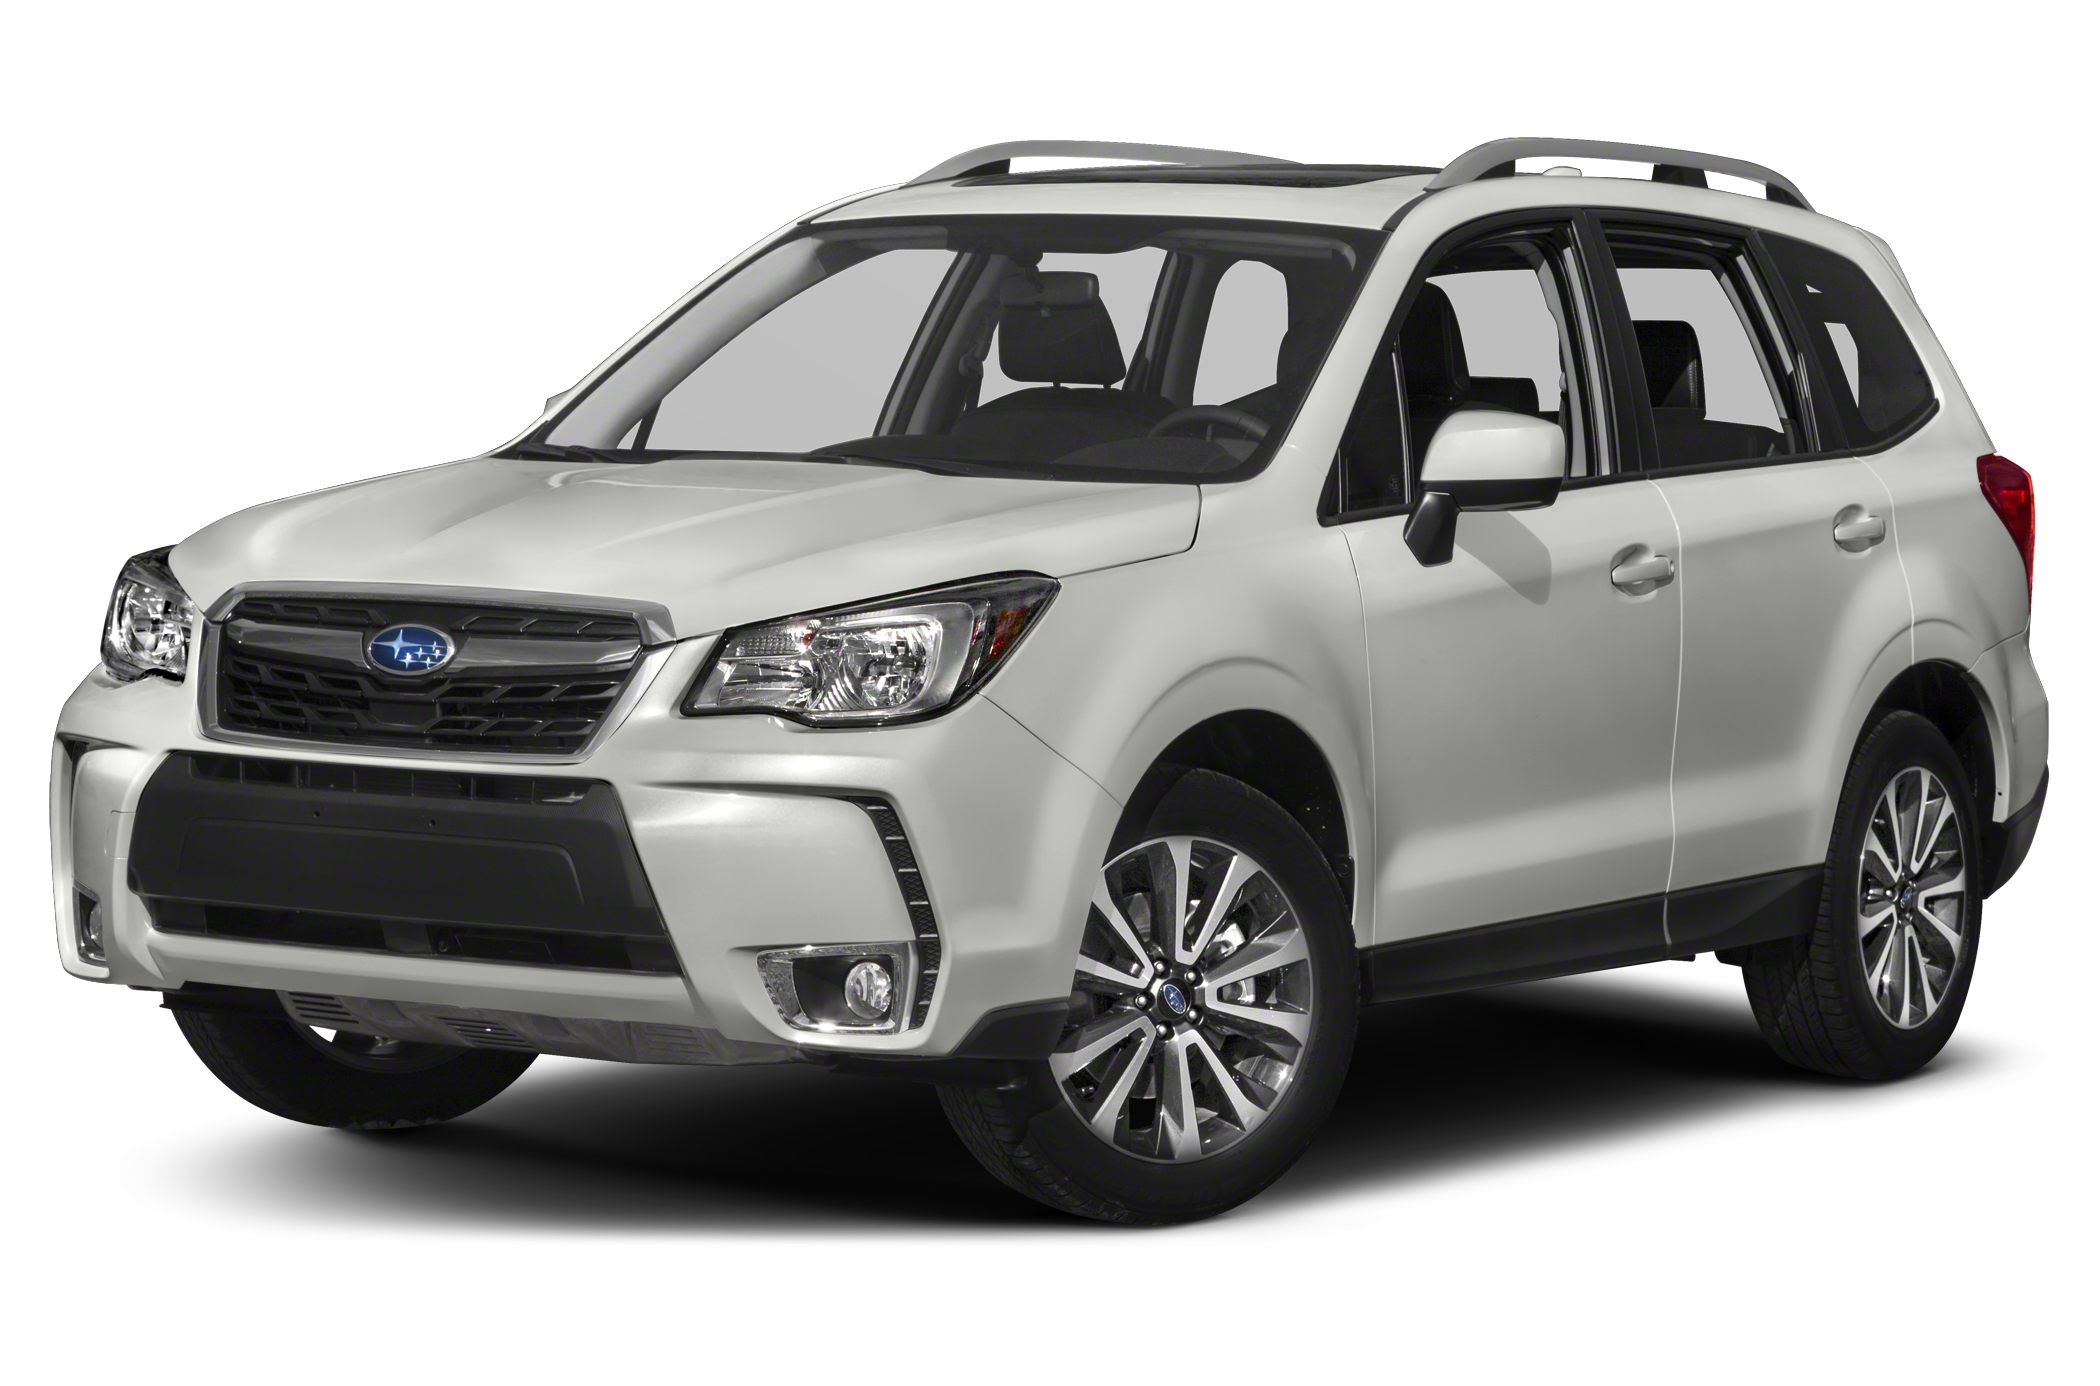 Beautiful Subaru forester 2016 Specifications